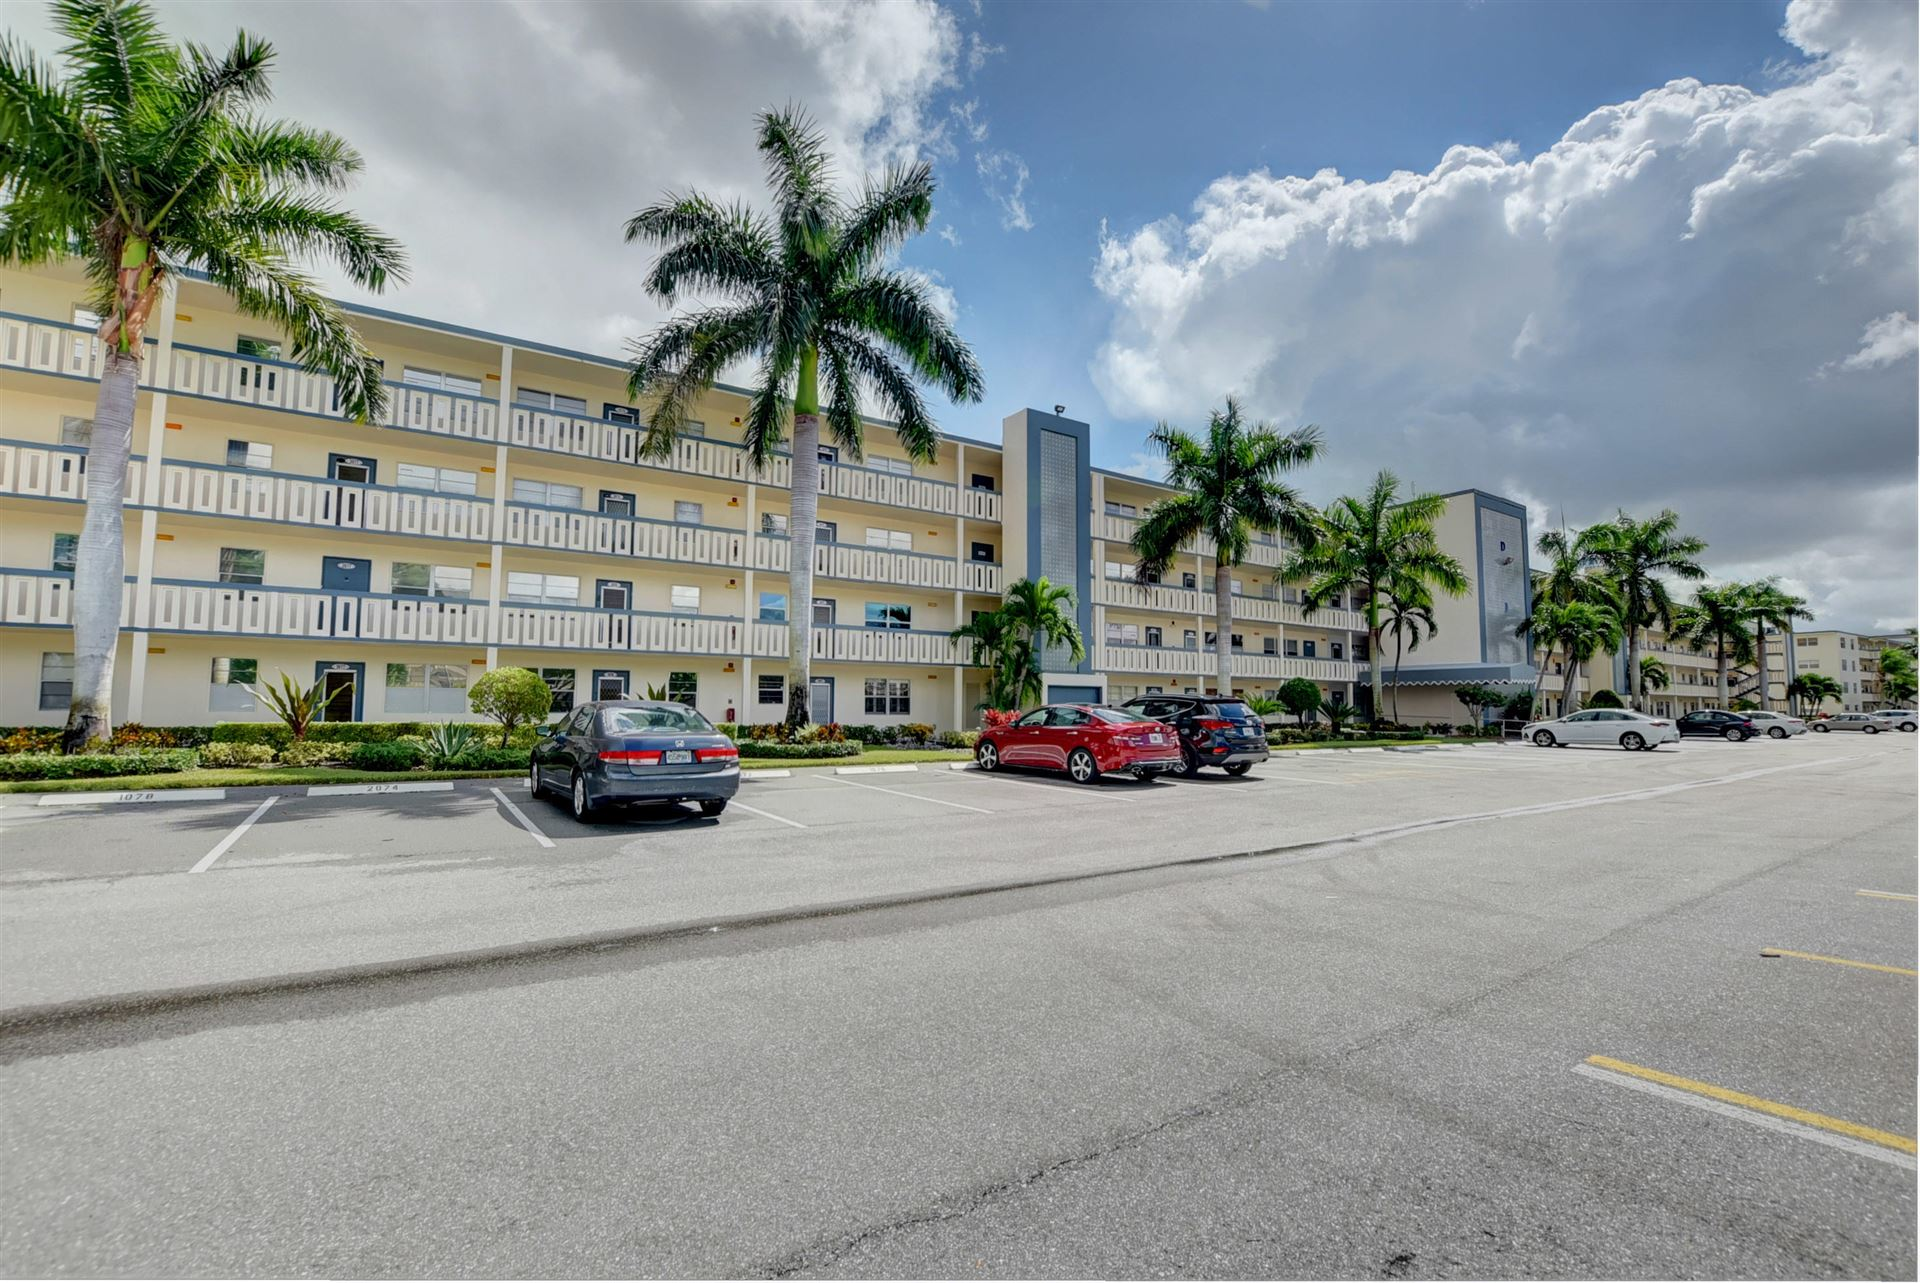 Photo of 4078 Yarmouth D #4078, Boca Raton, FL 33434 (MLS # RX-10570319)